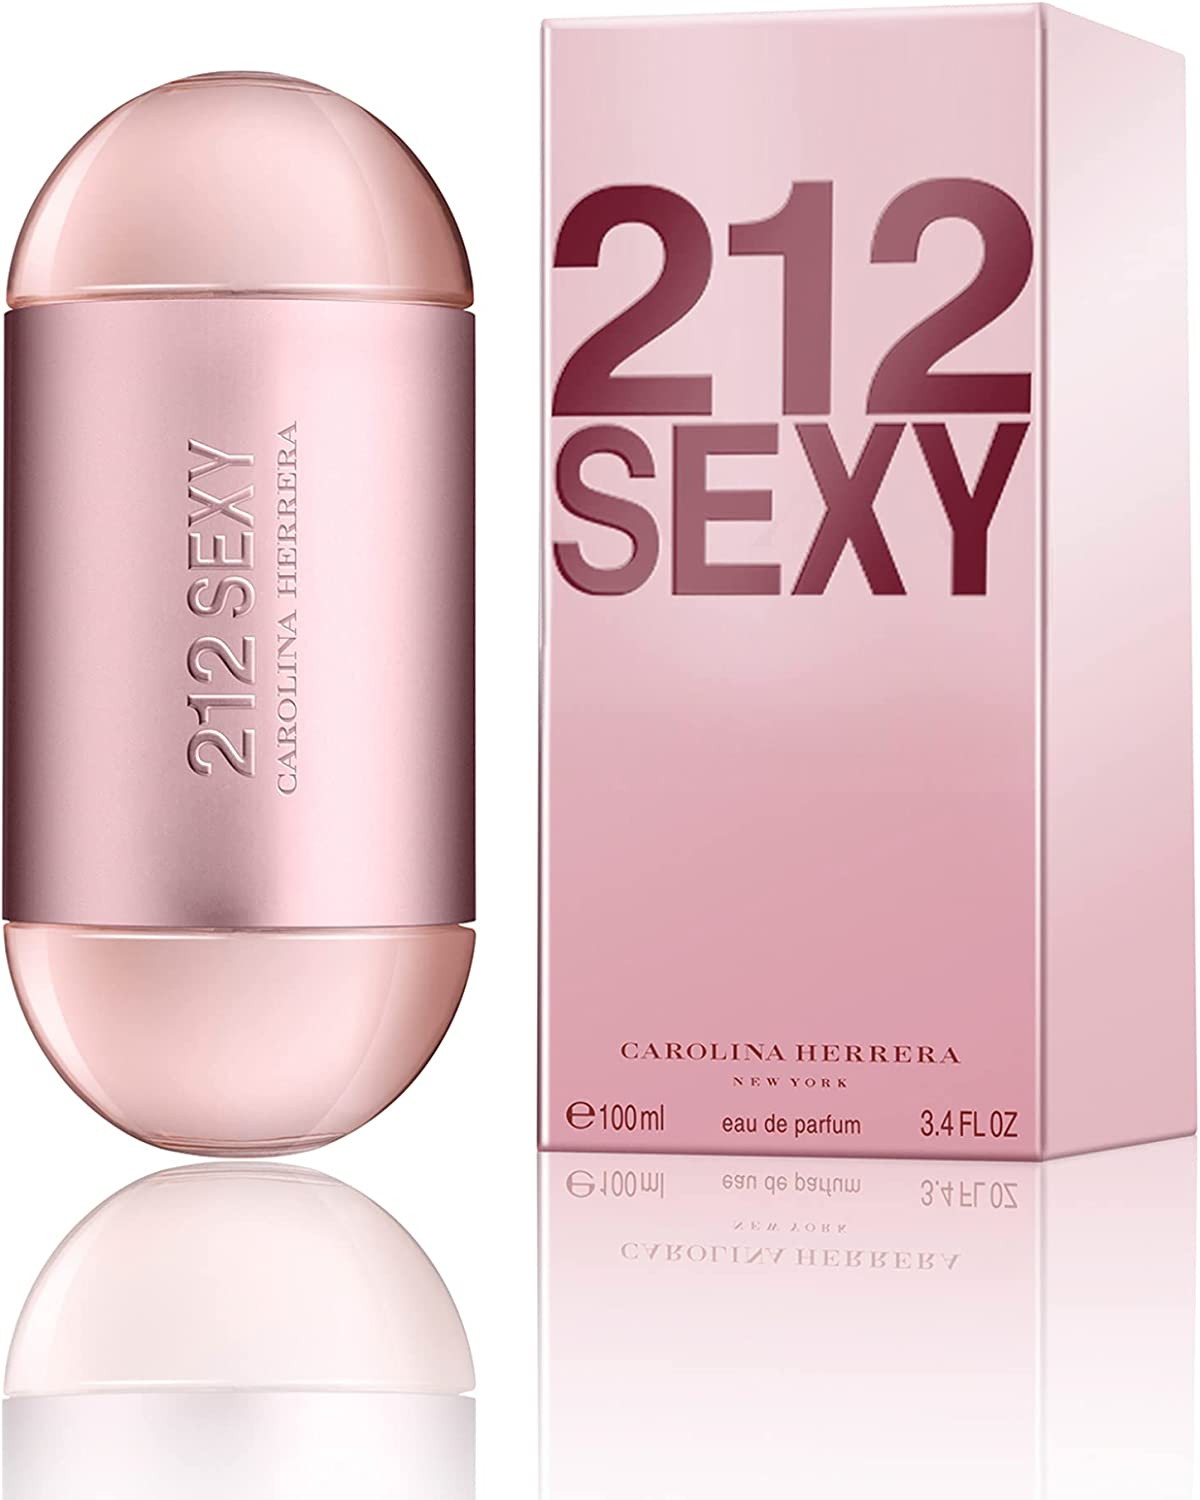 Best Sweet Colognes for Women